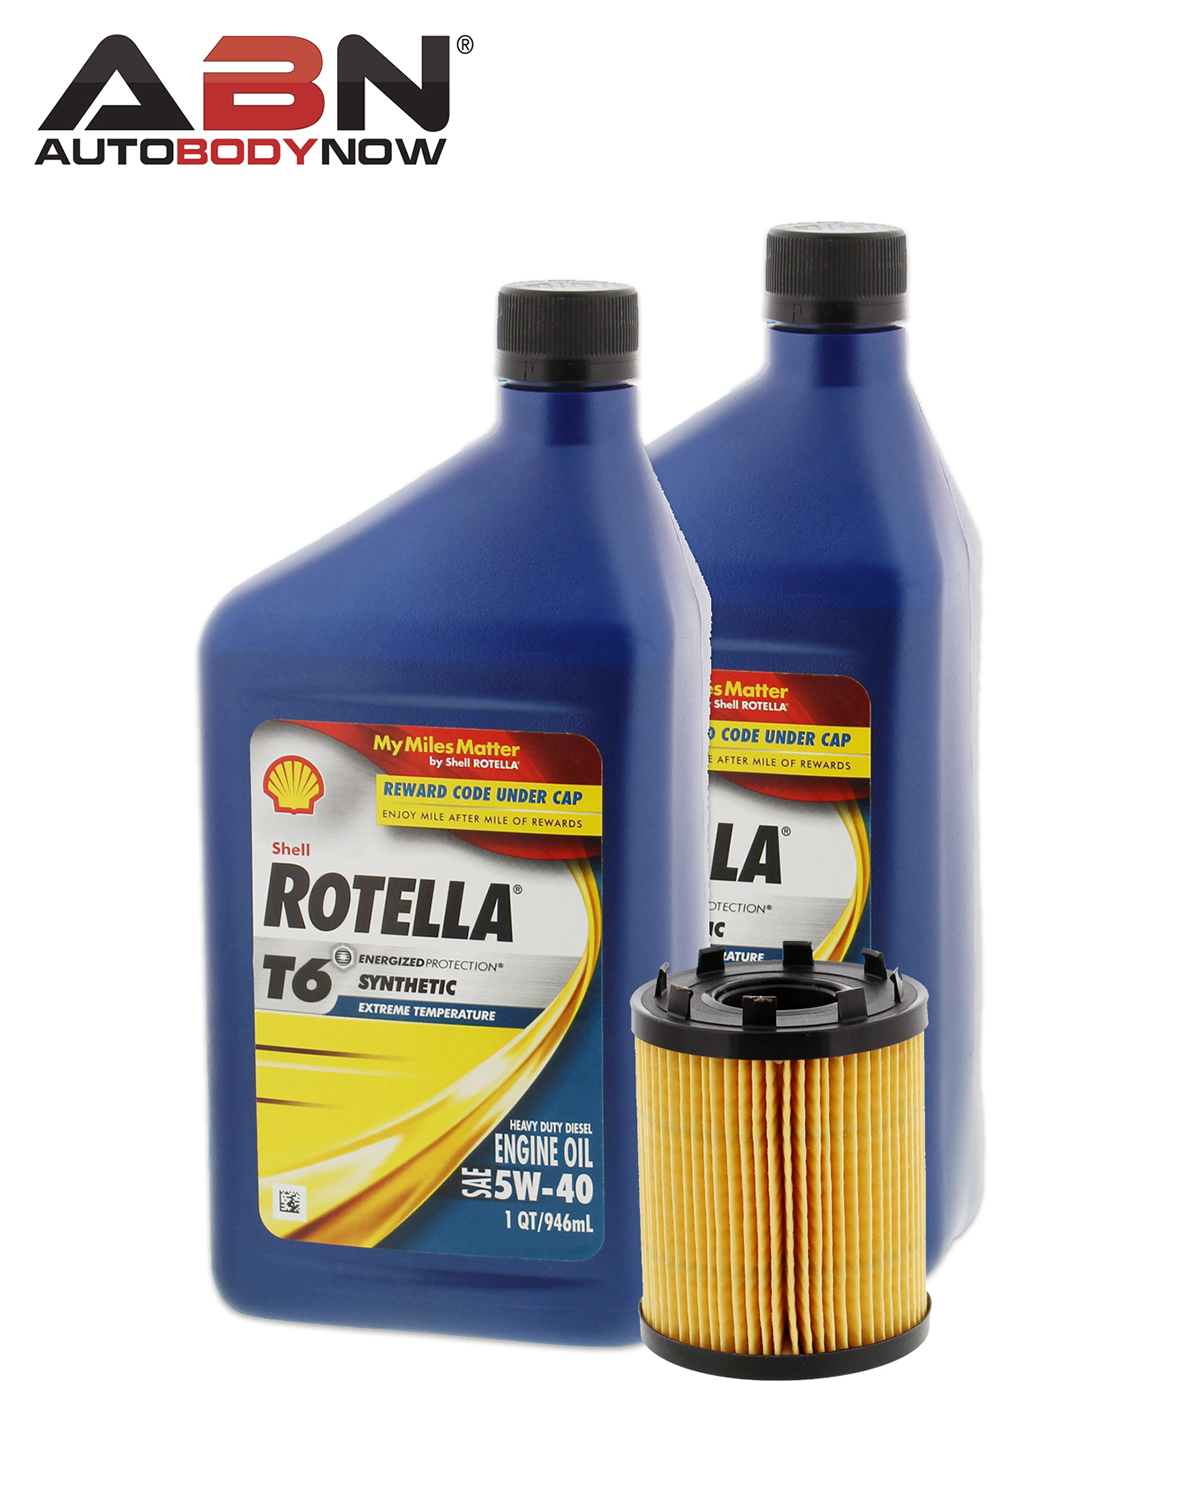 Mopar 68102241aa oil filter shell rotella t6 5w40 for 1 for Shell rotella t6 5w 40 diesel motor oil